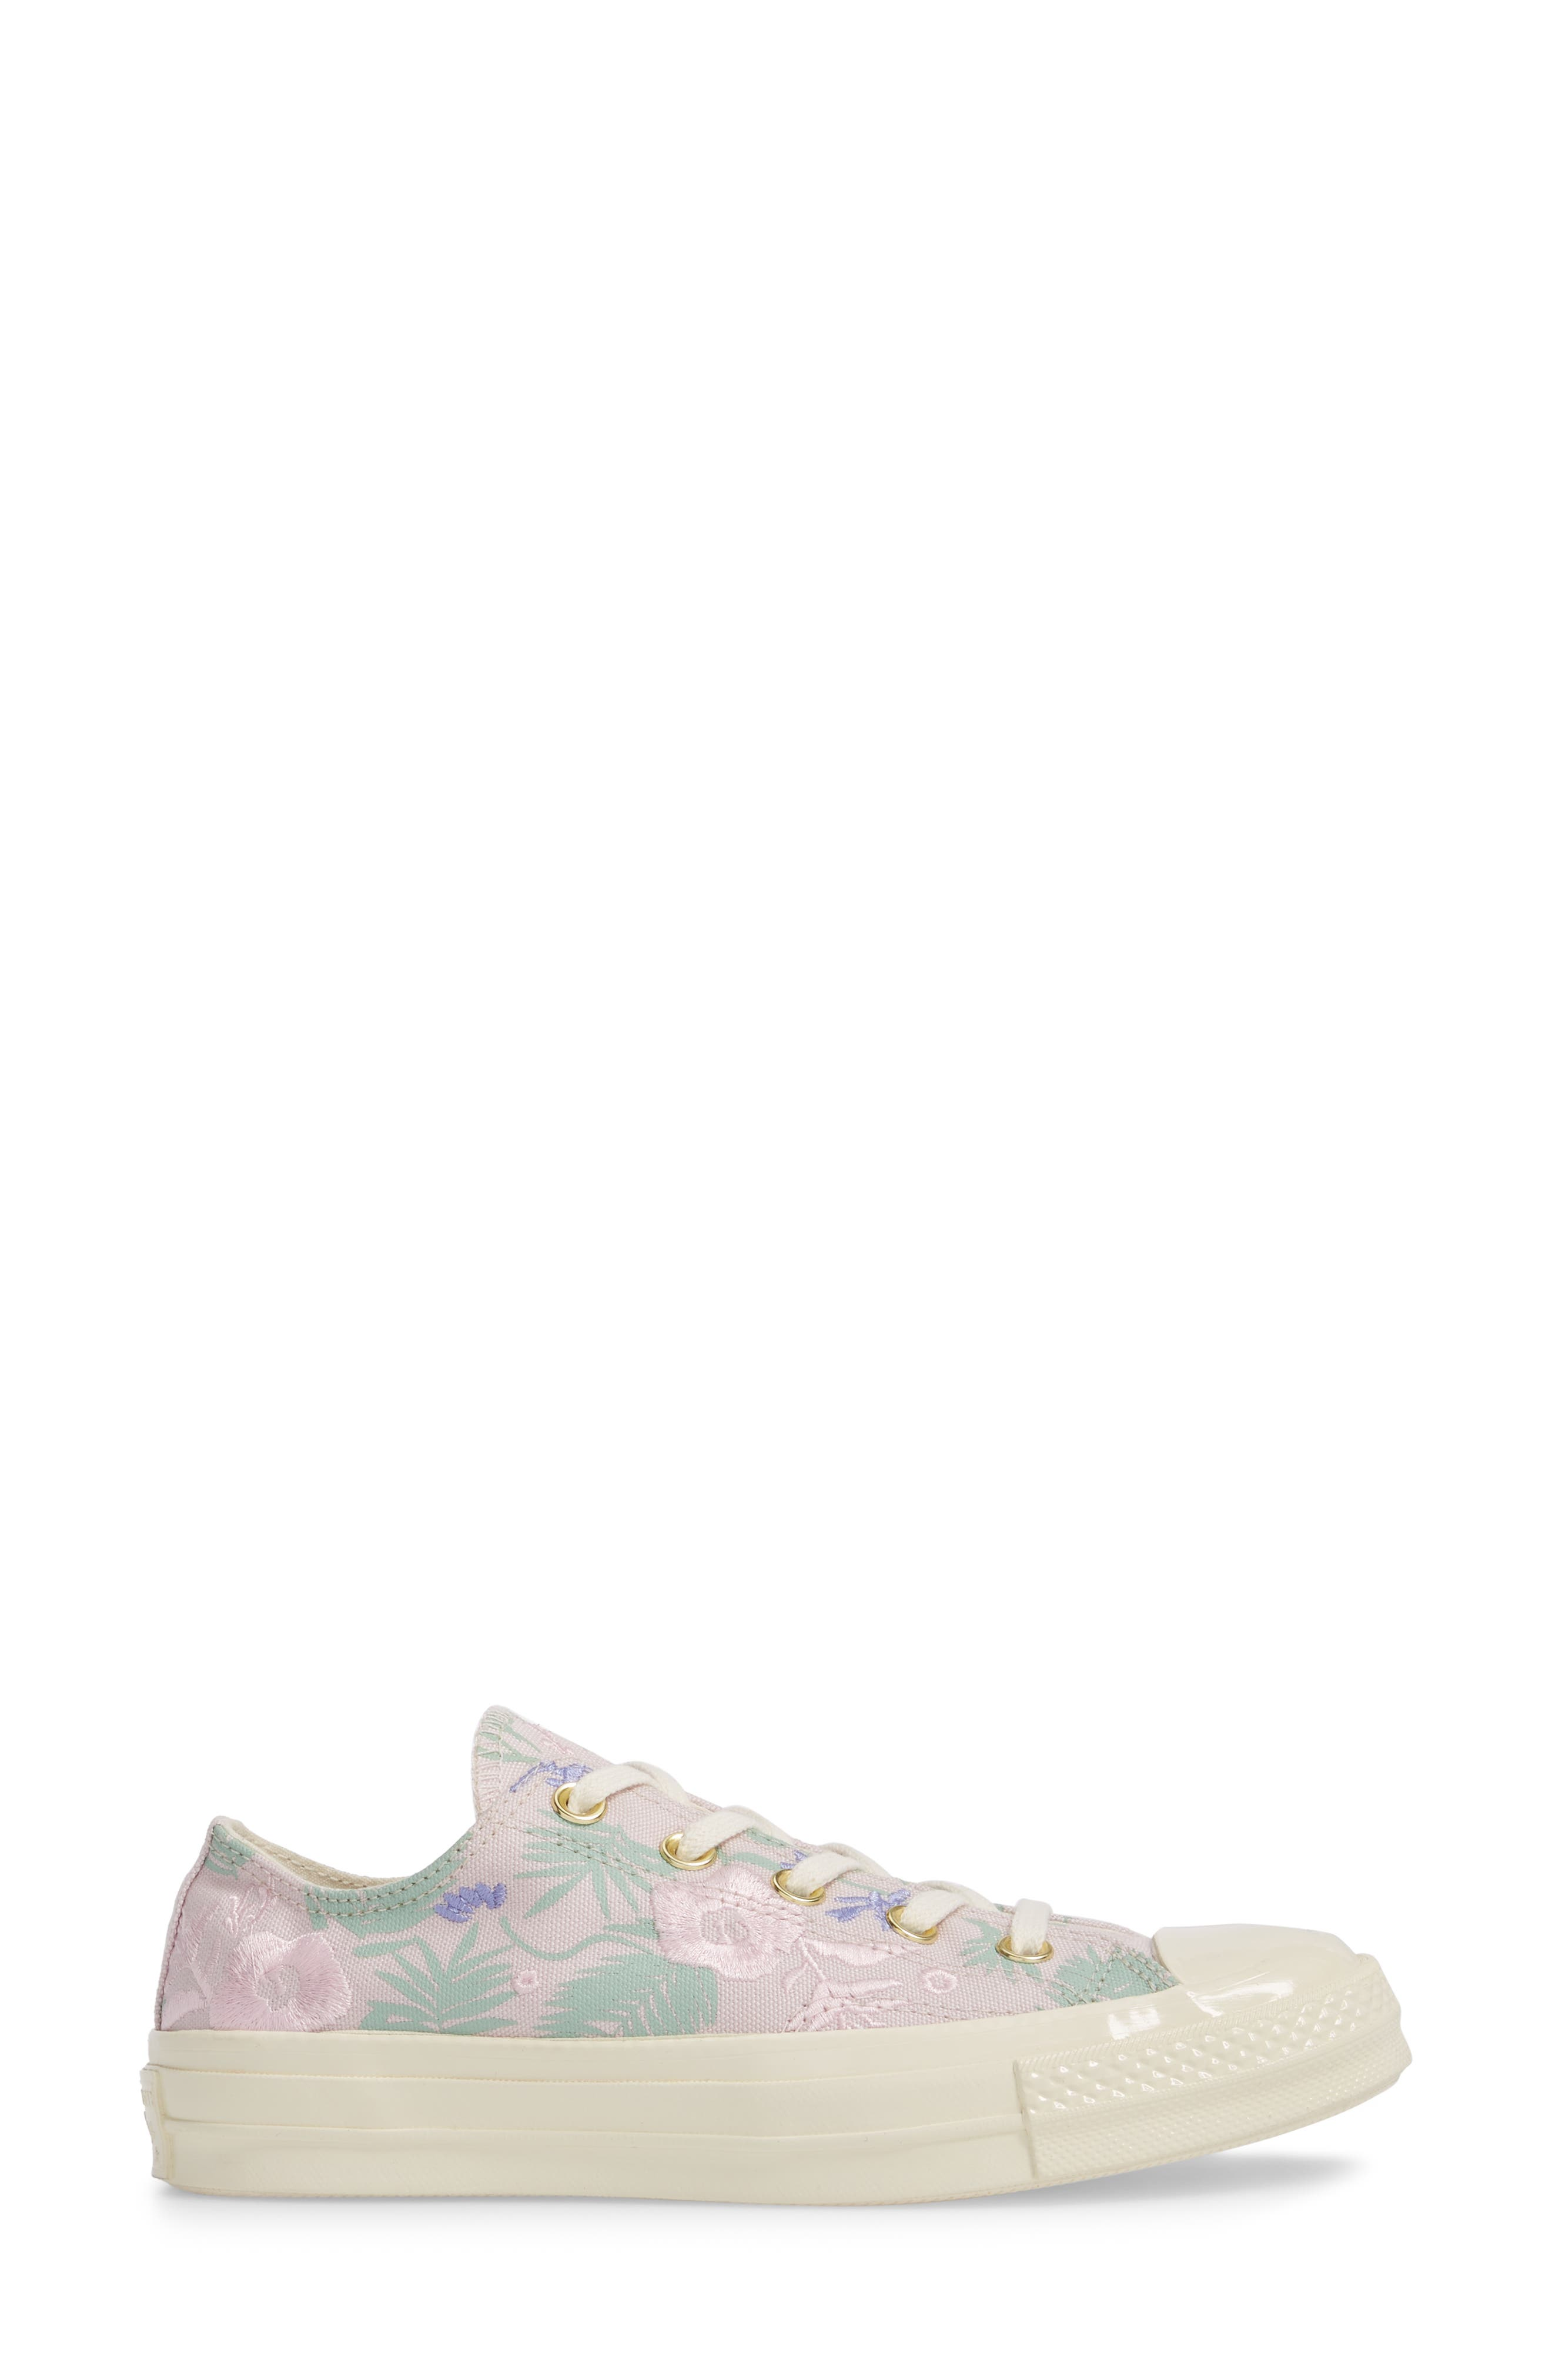 Chuck Taylor<sup>®</sup> All Star<sup>®</sup> 70 Palm Print Low Top Sneaker,                             Alternate thumbnail 3, color,                             658